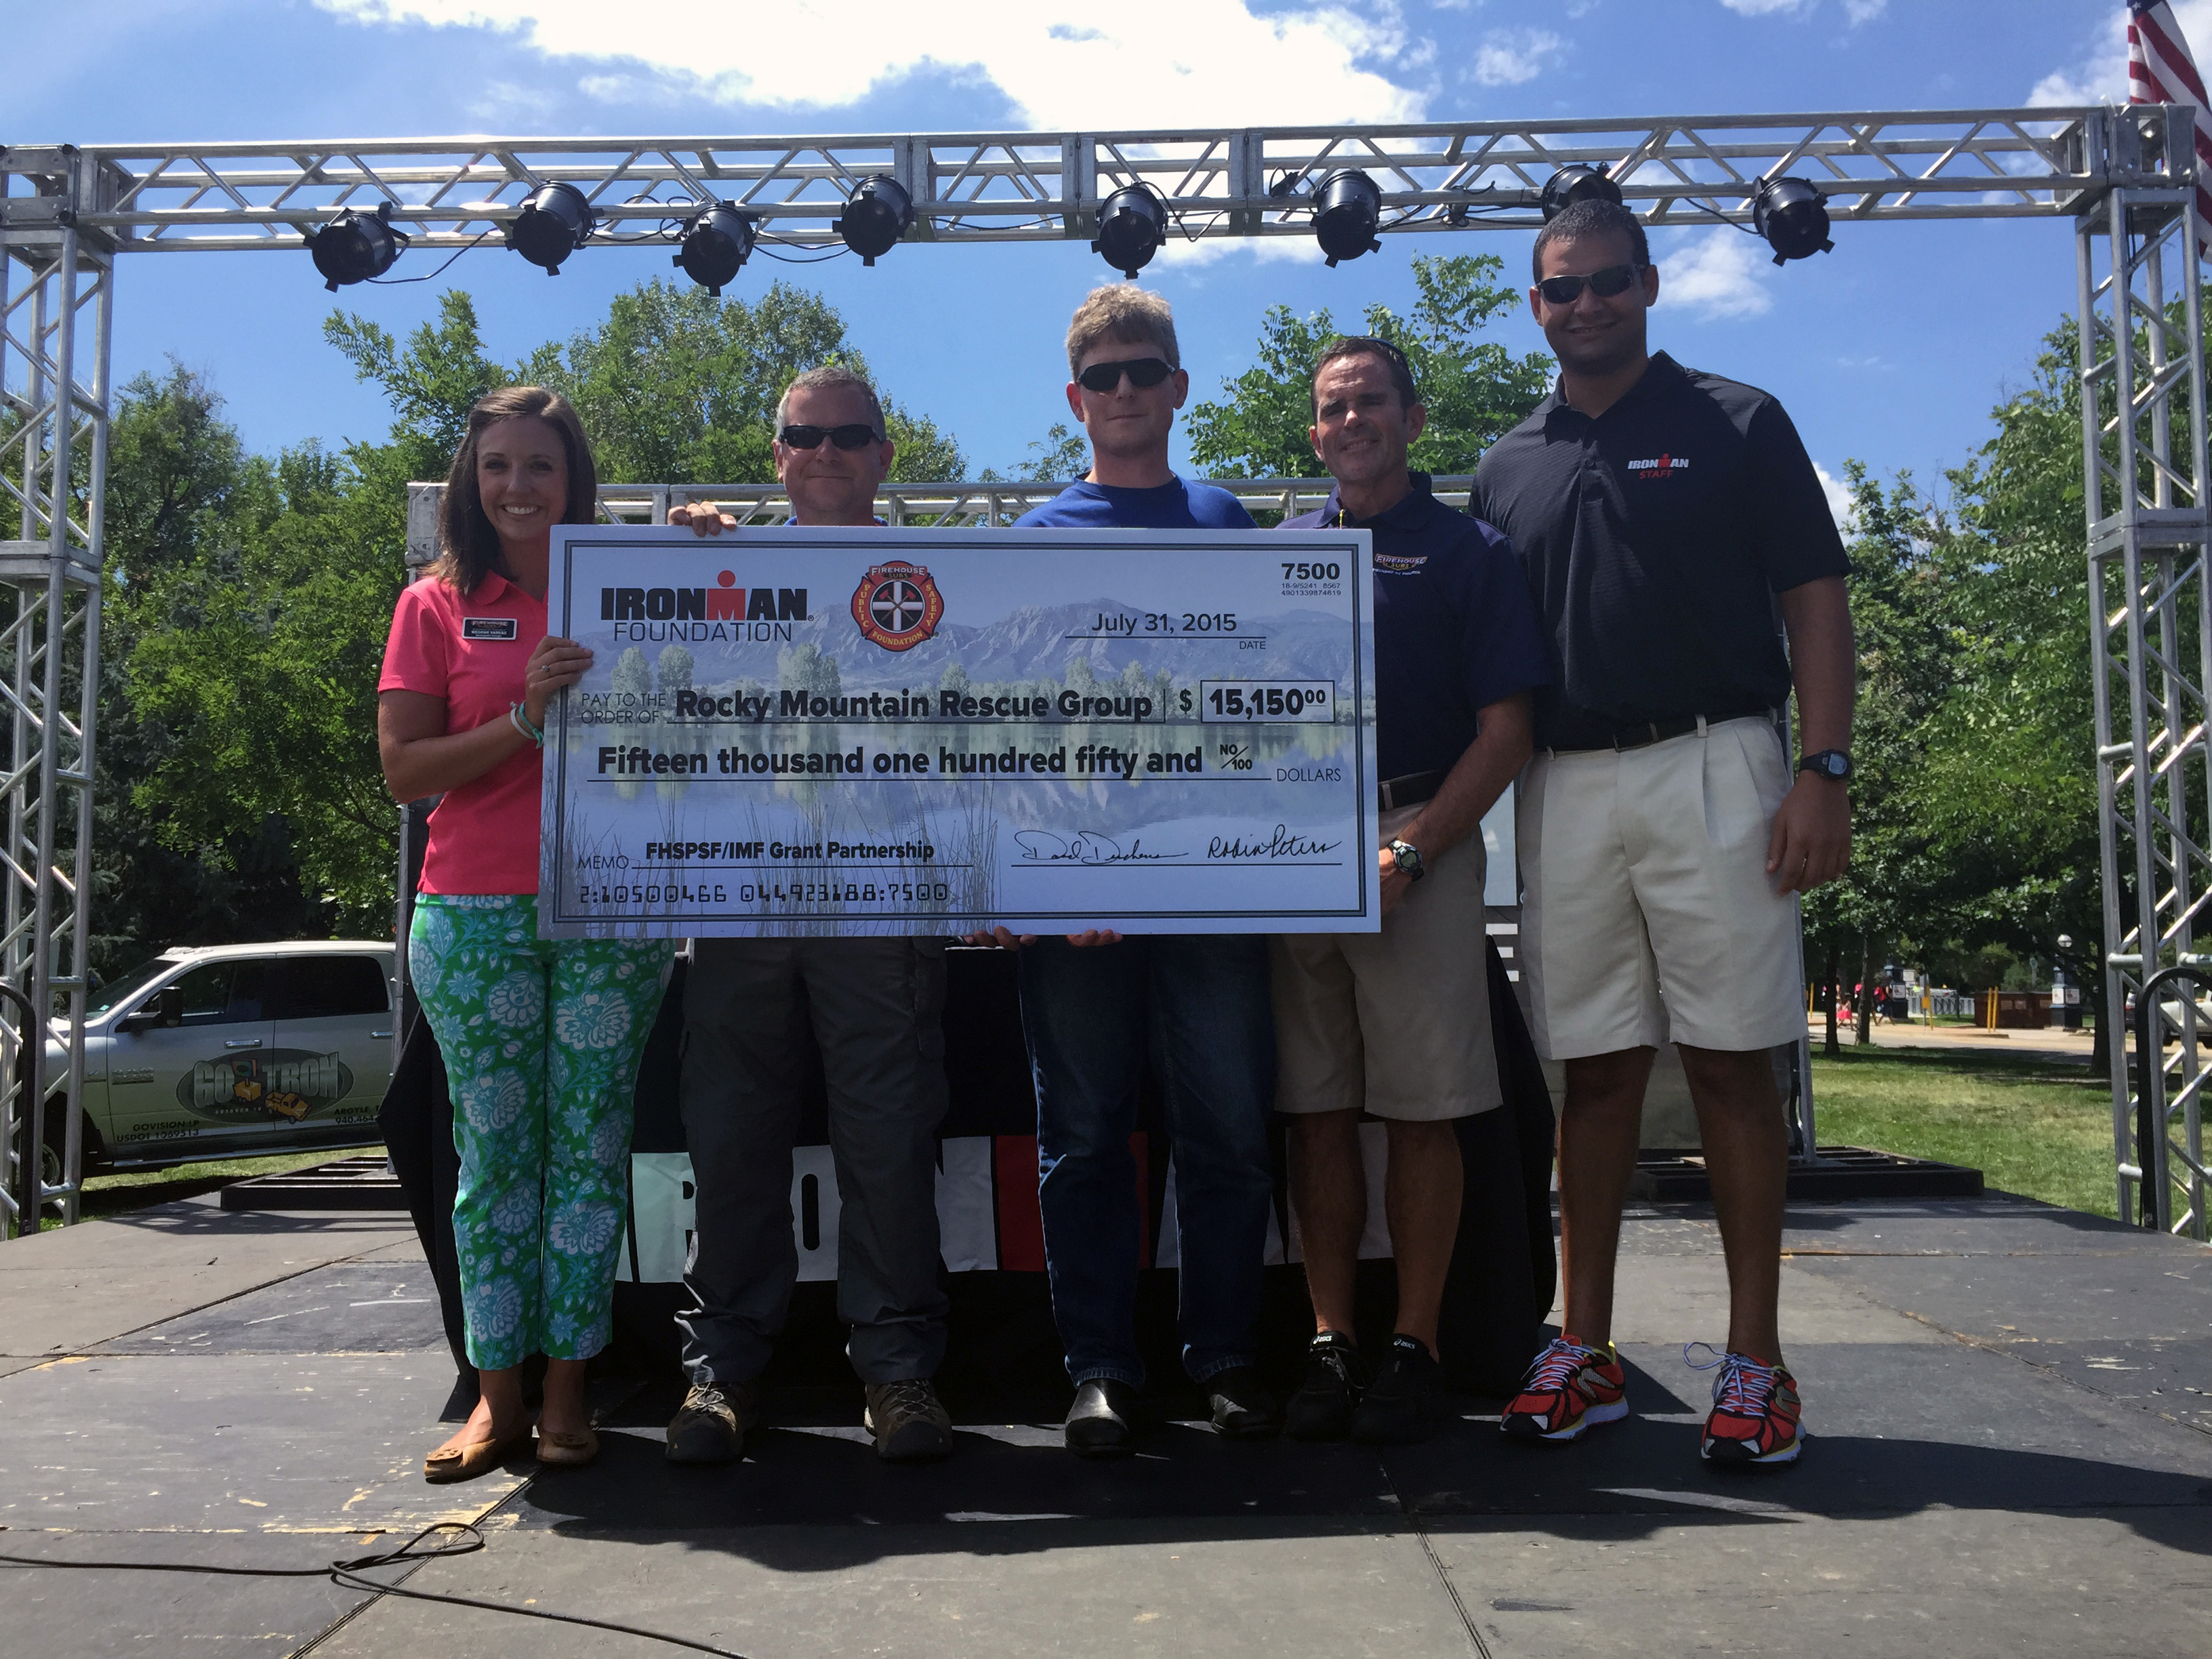 2015 IRONMAN Boulder - Rocky Mt Rescue Group Check Presentation